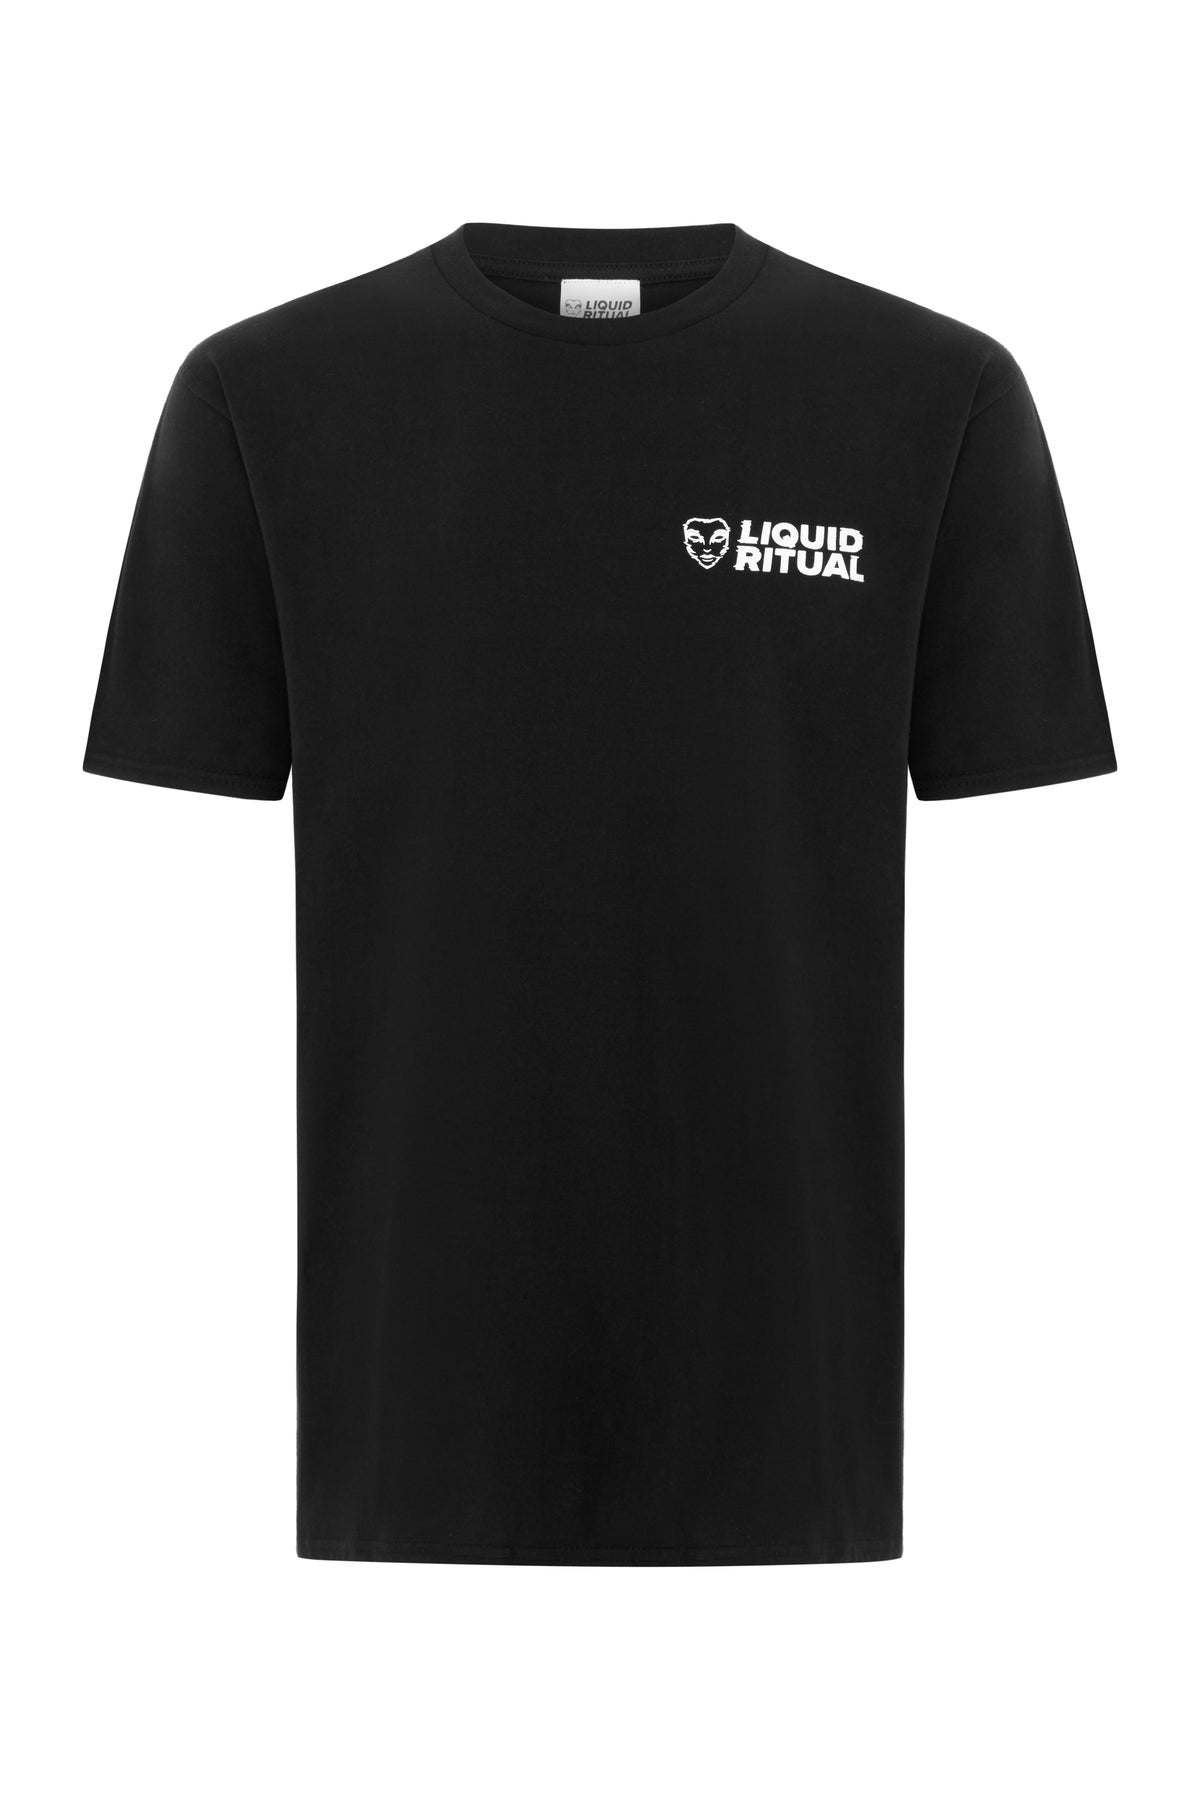 Image of Liquid Ritual Tee